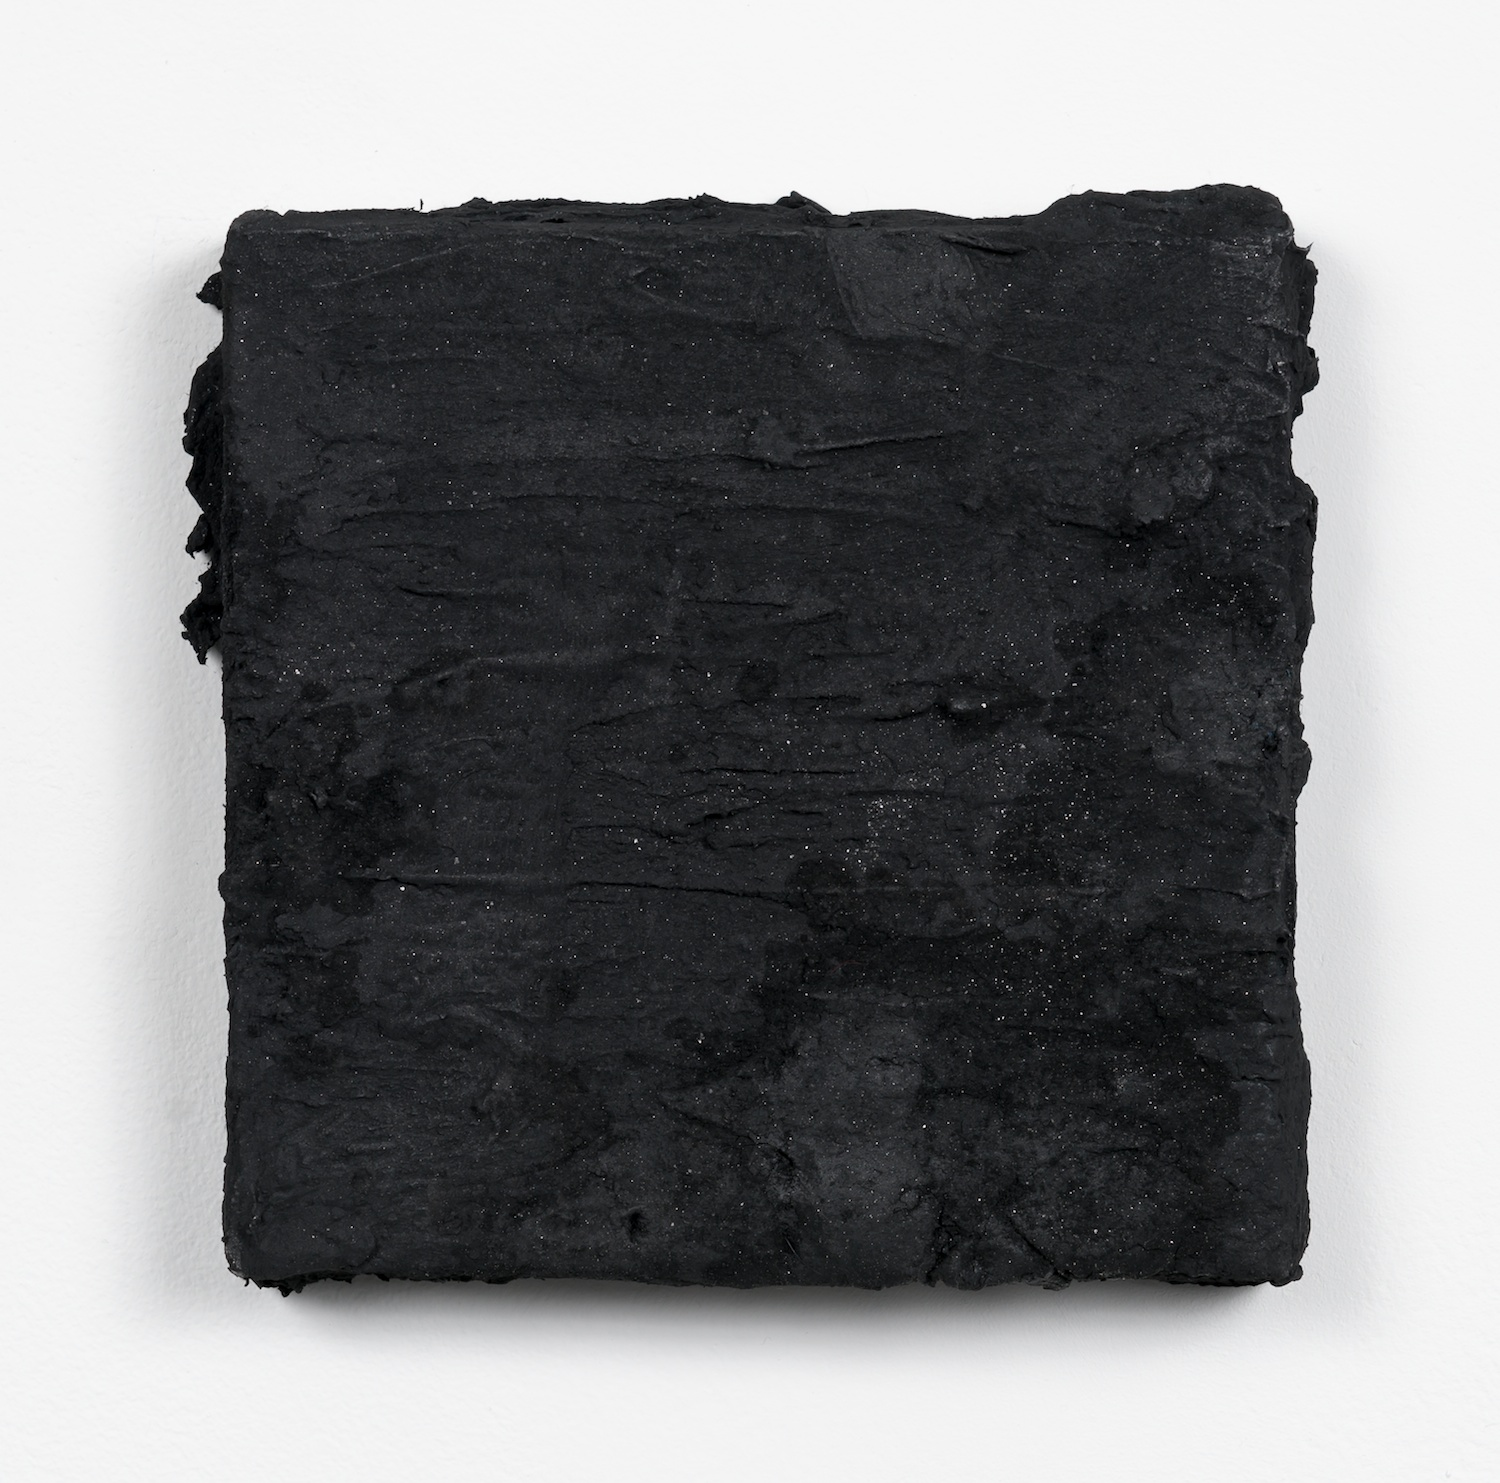 Tony Lewis  Bacon and Eggs  2013 Oil and powdered graphite on canvas 6 ½h x 6 ½w x 1d in TL124